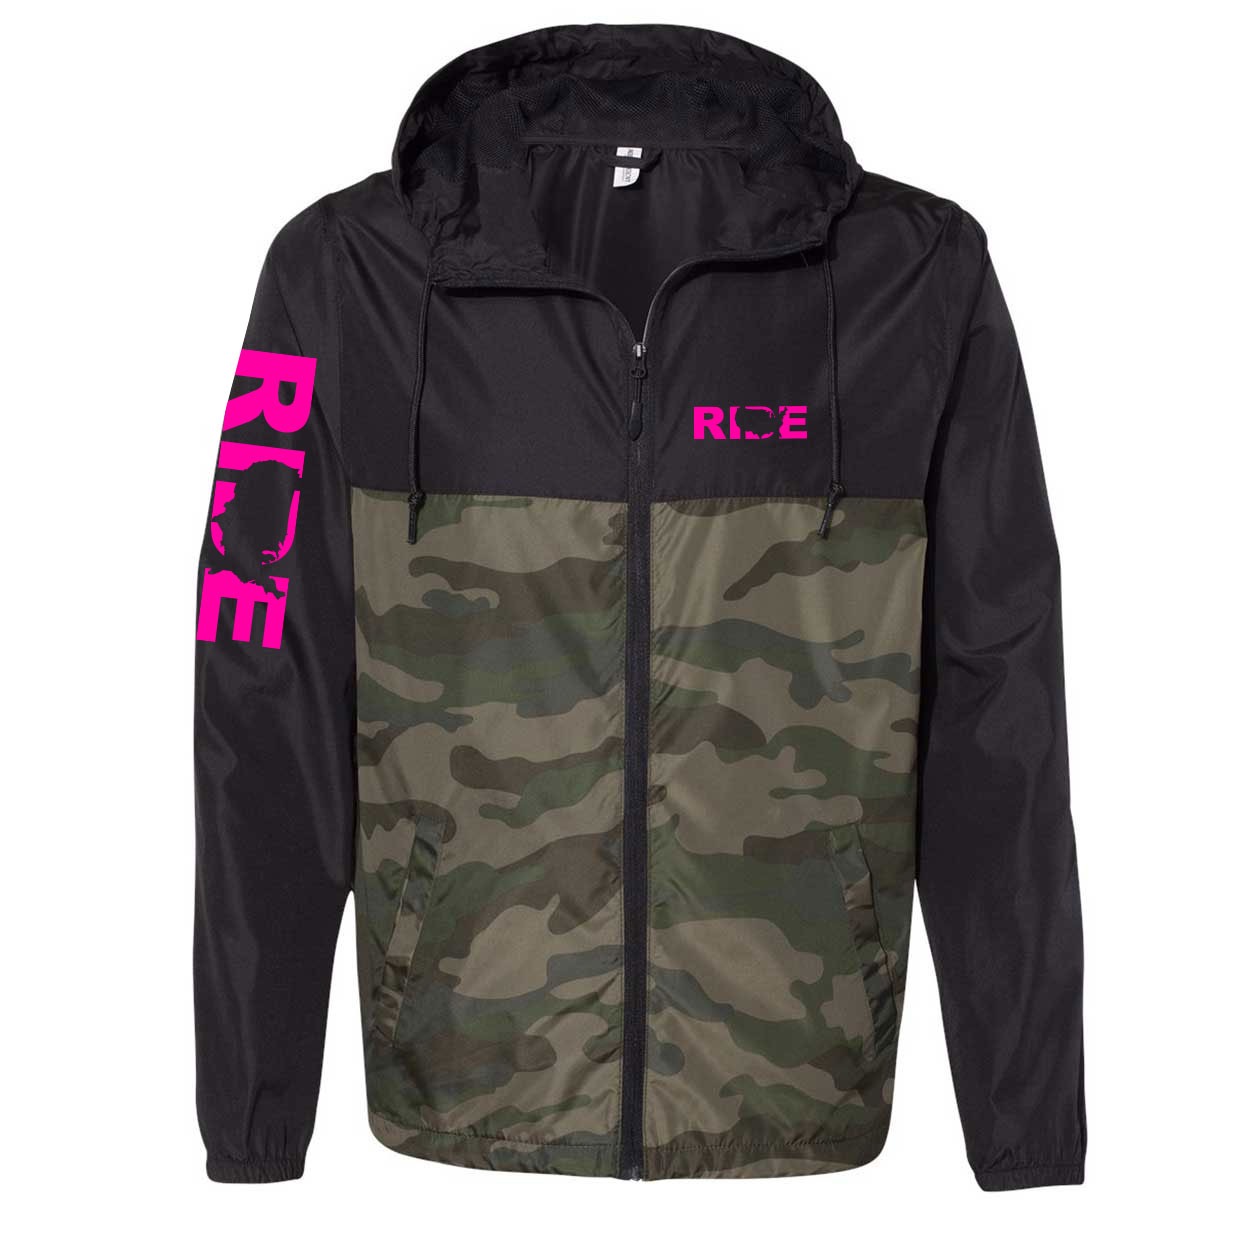 Ride United States Classic Lightweight Windbreaker Black/Forest Camo (Pink Logo)